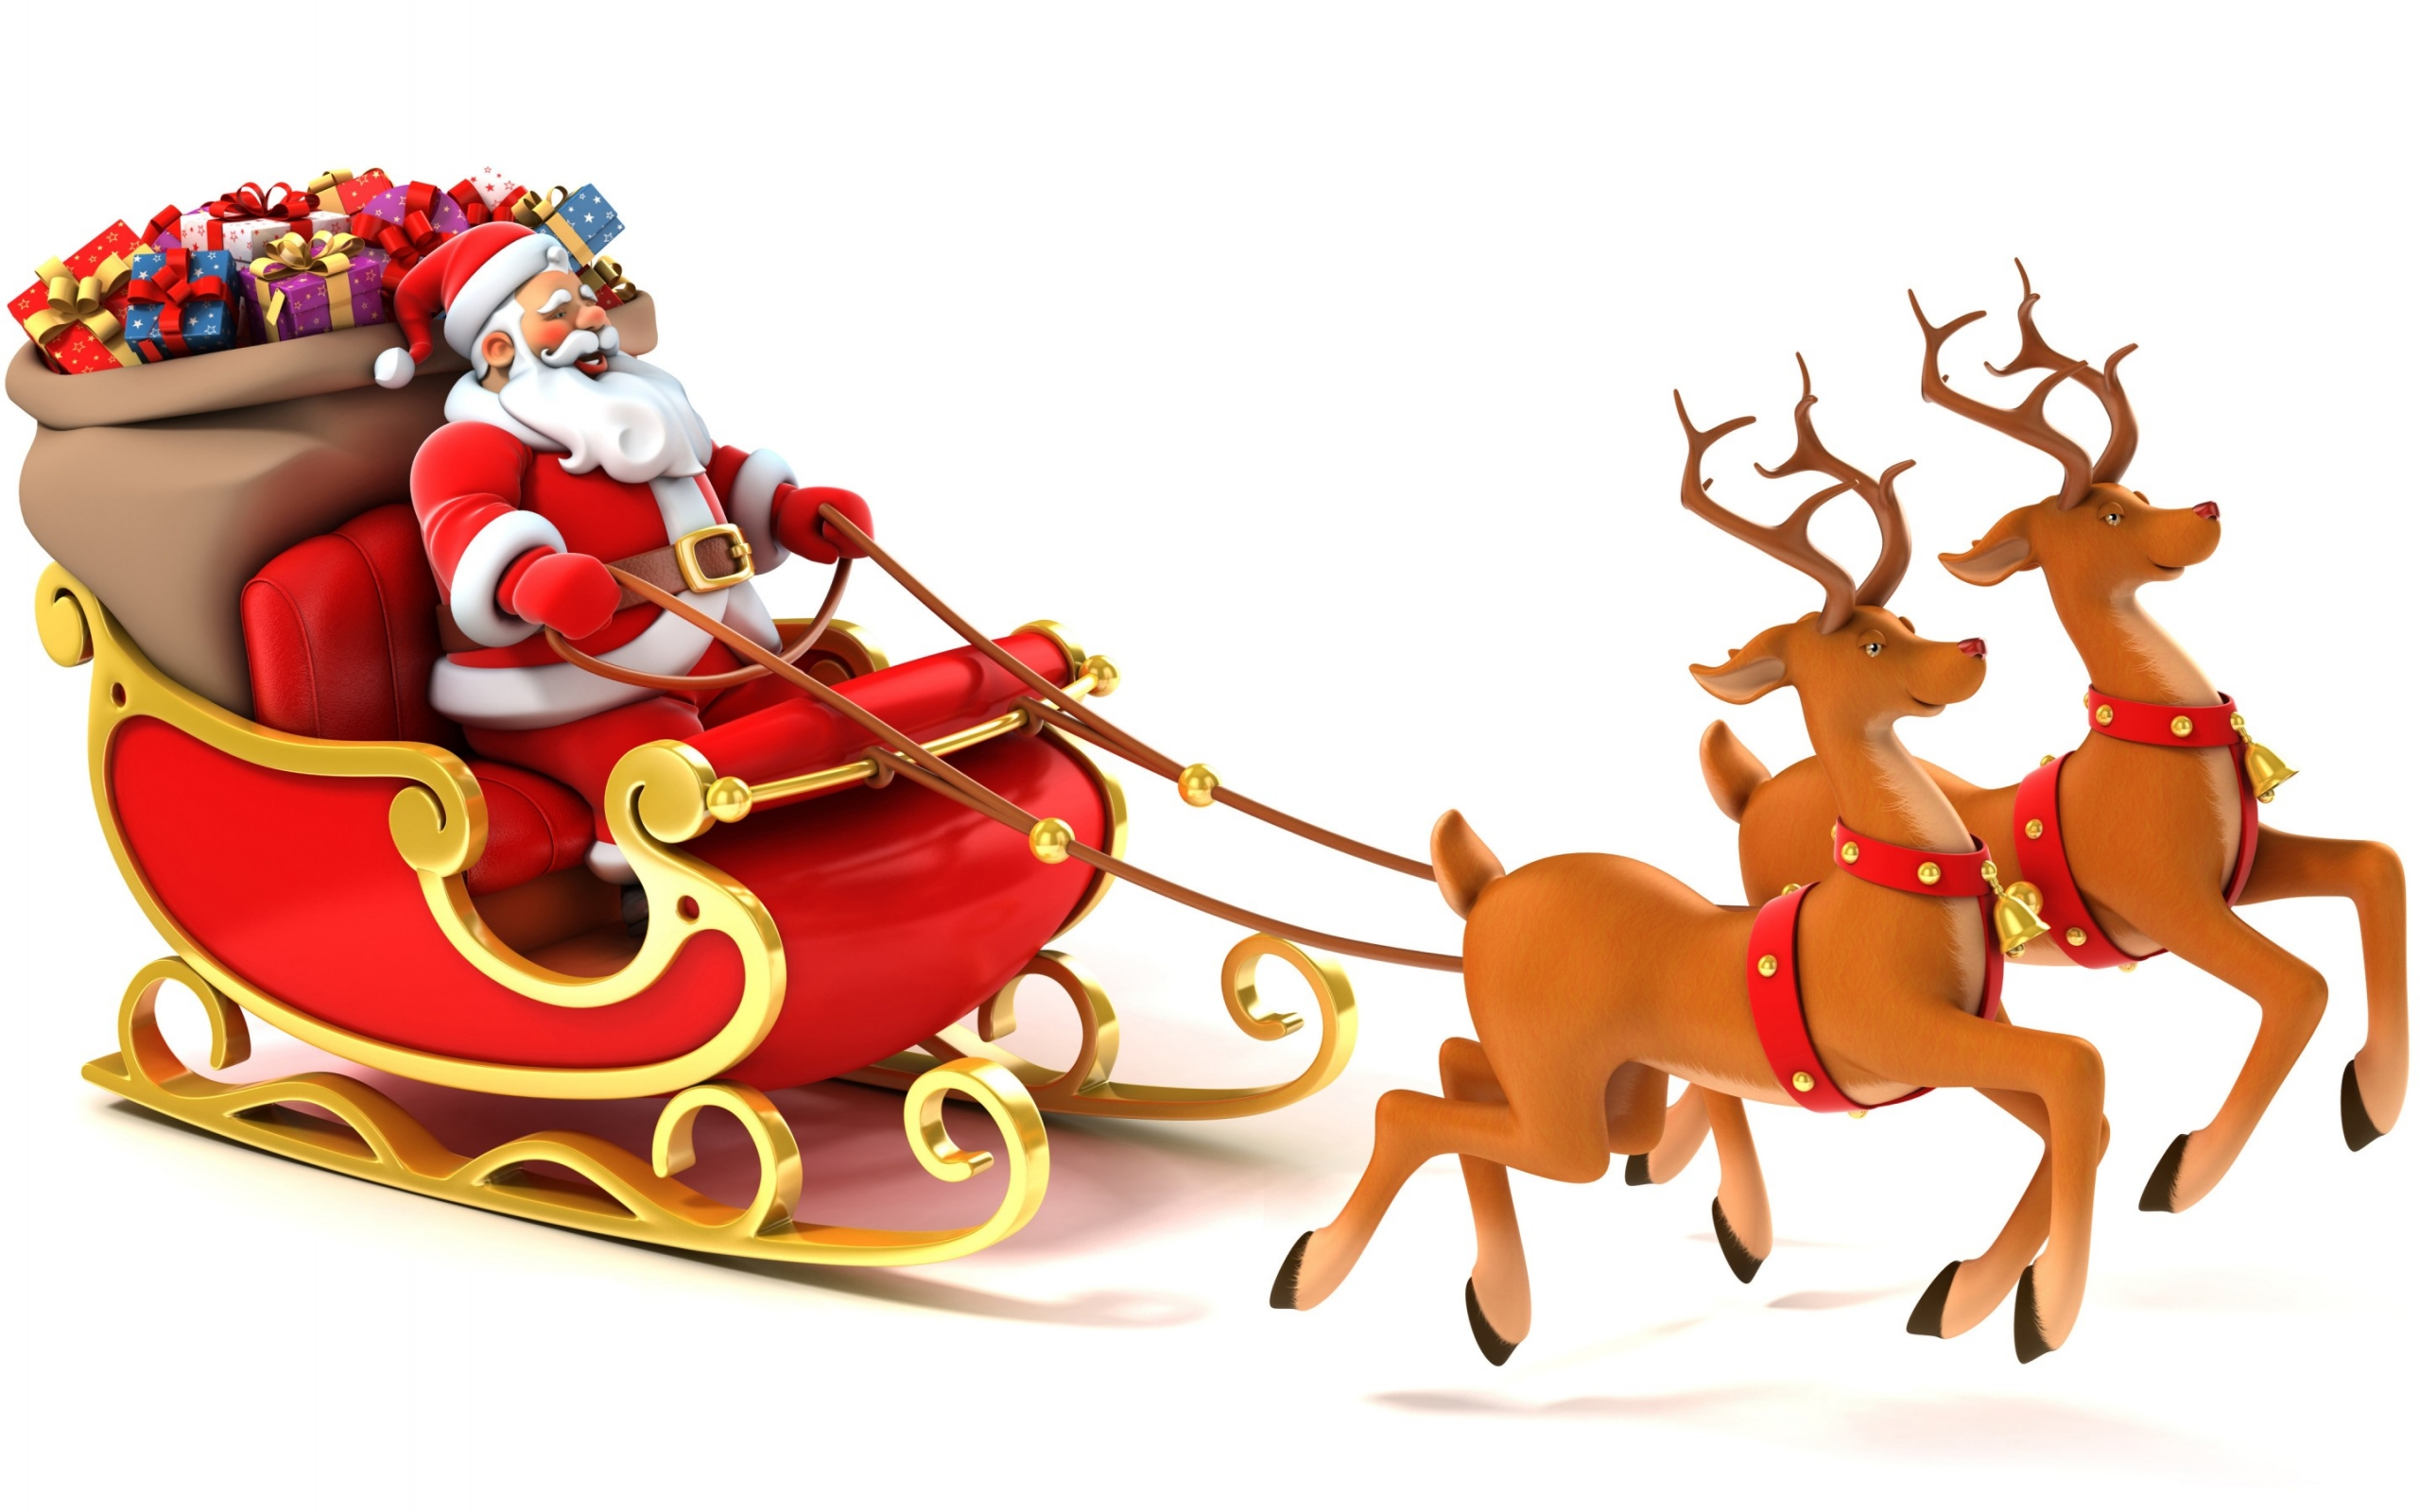 Cool Santa And Reindeer Pics imagebasketnet. ← Troll Doll Wallpaper Border